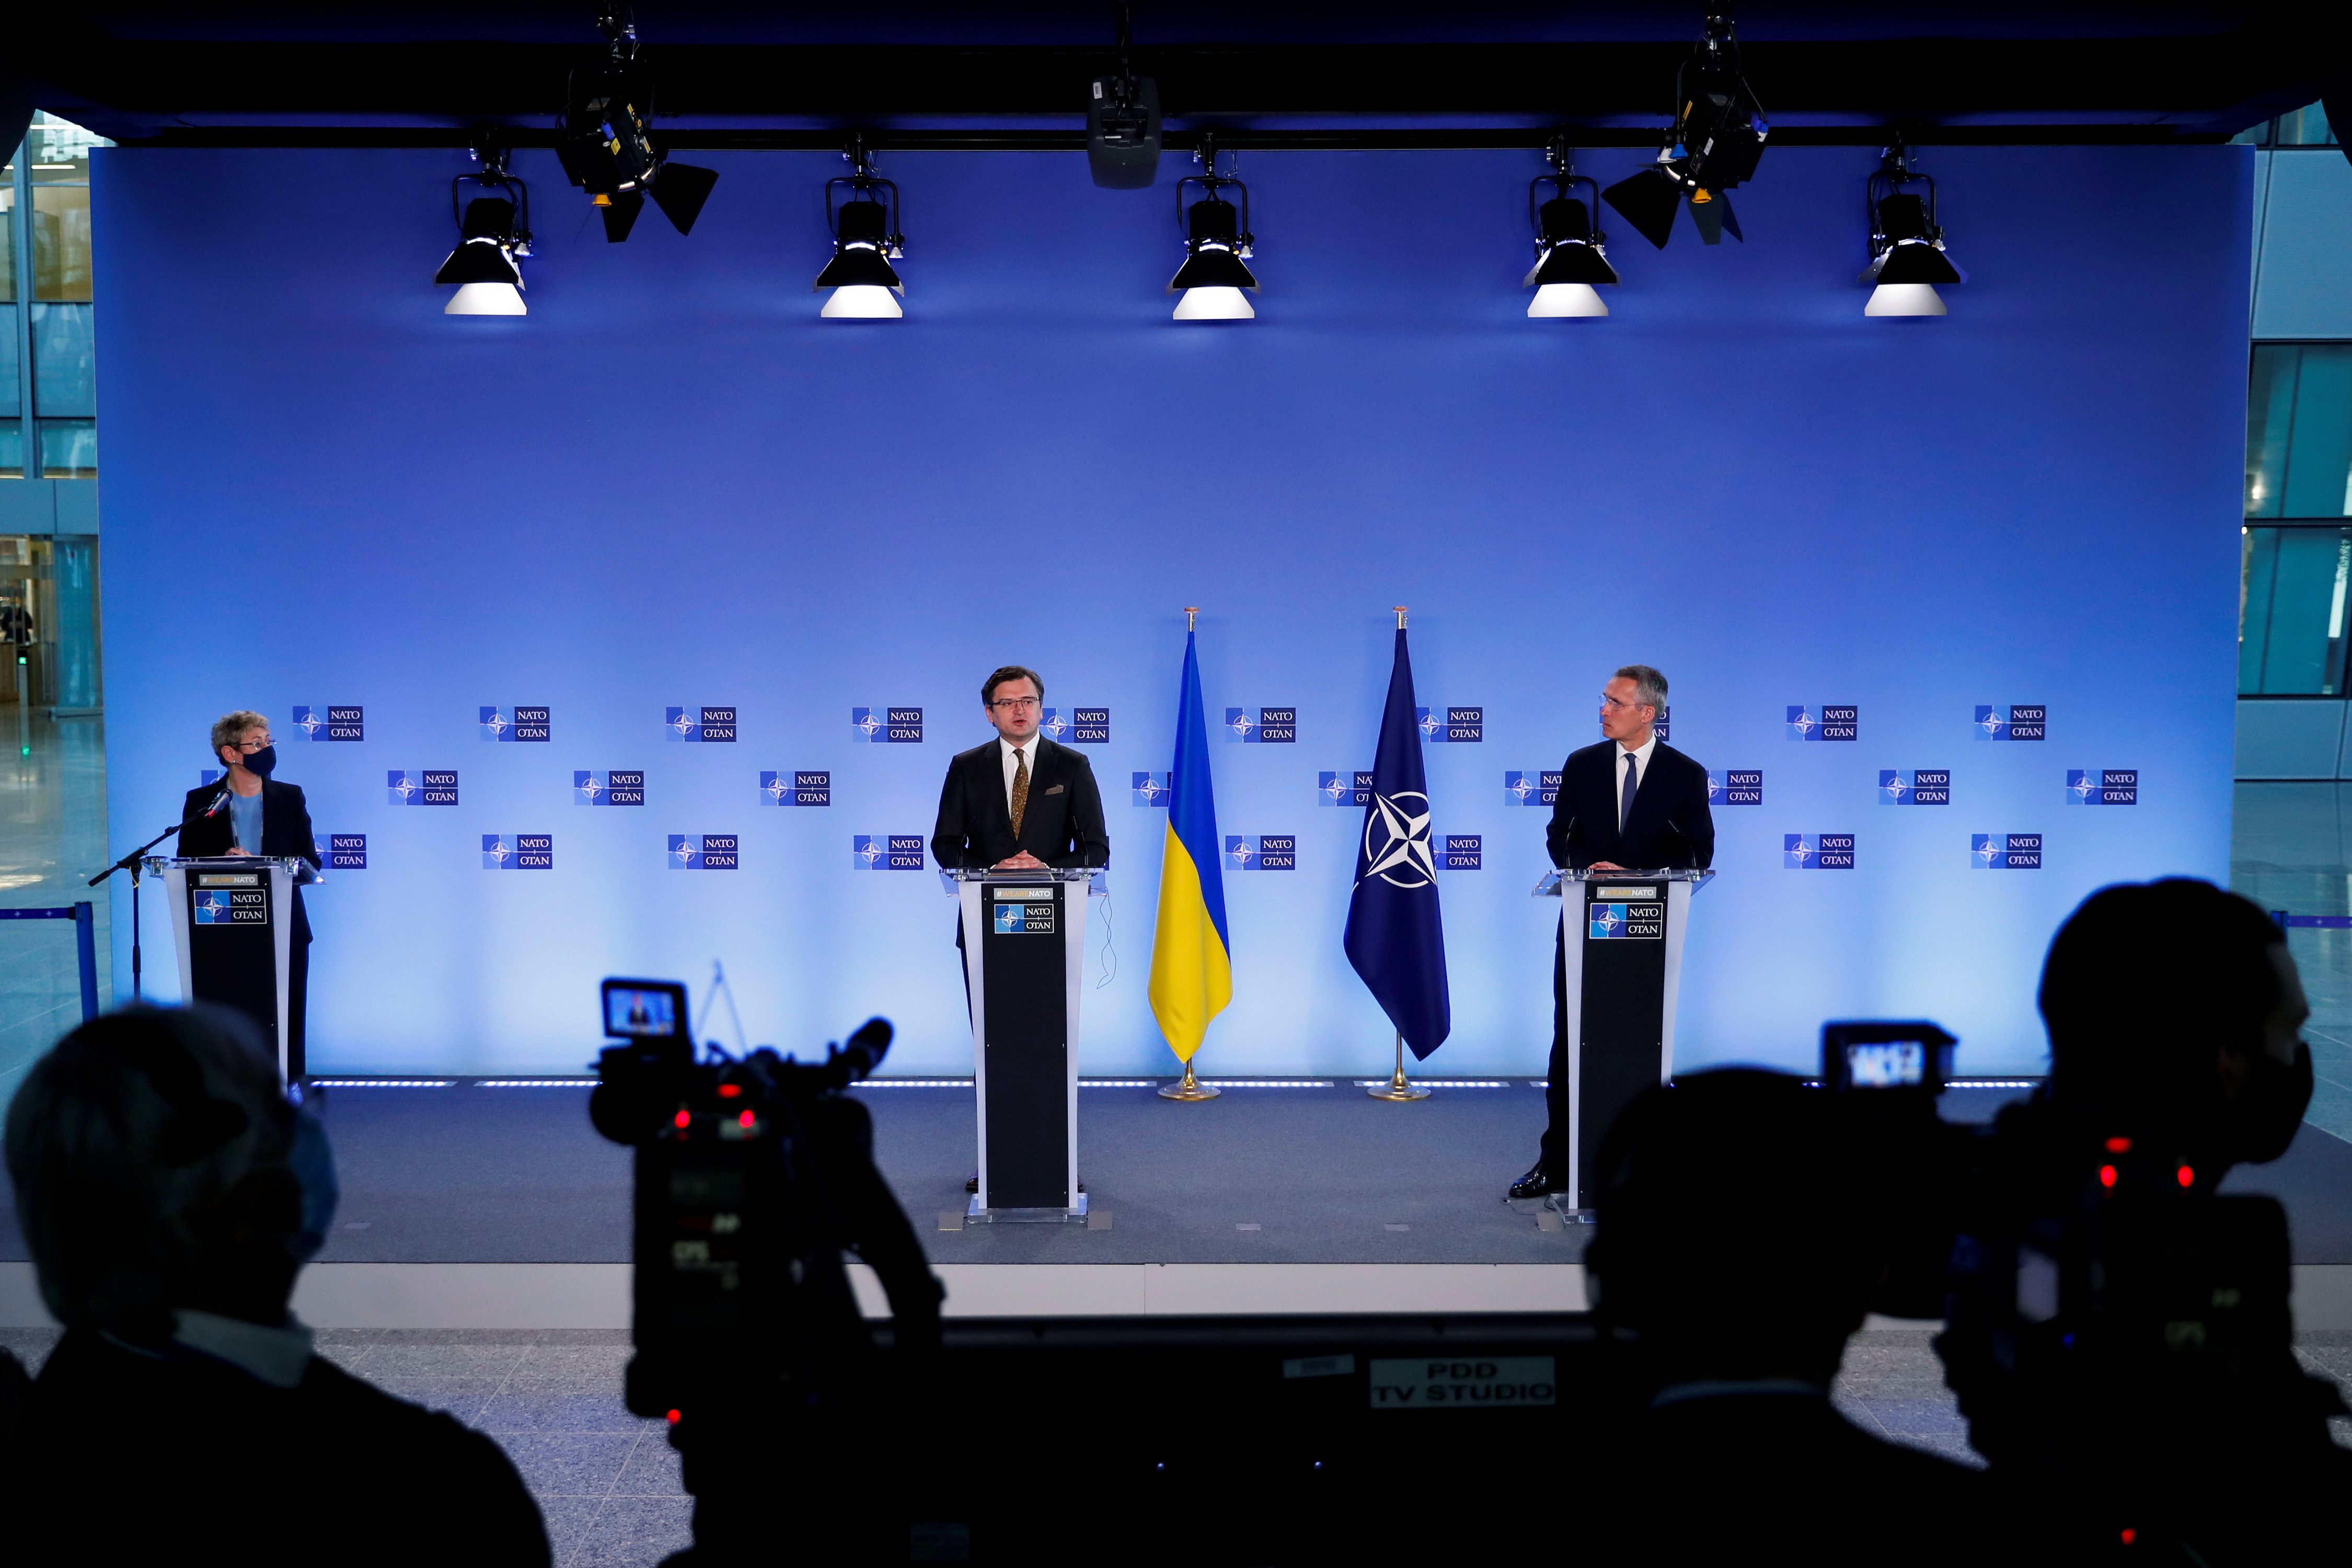 NATO Secretary General Jens Stoltenberg and Ukrainian Foreign Minister Dmytro Kuleba give a press conference at NATO headquarters in Brussels, Belgium, April 13, 2021. Francisco Seco/Pool via REUTERS